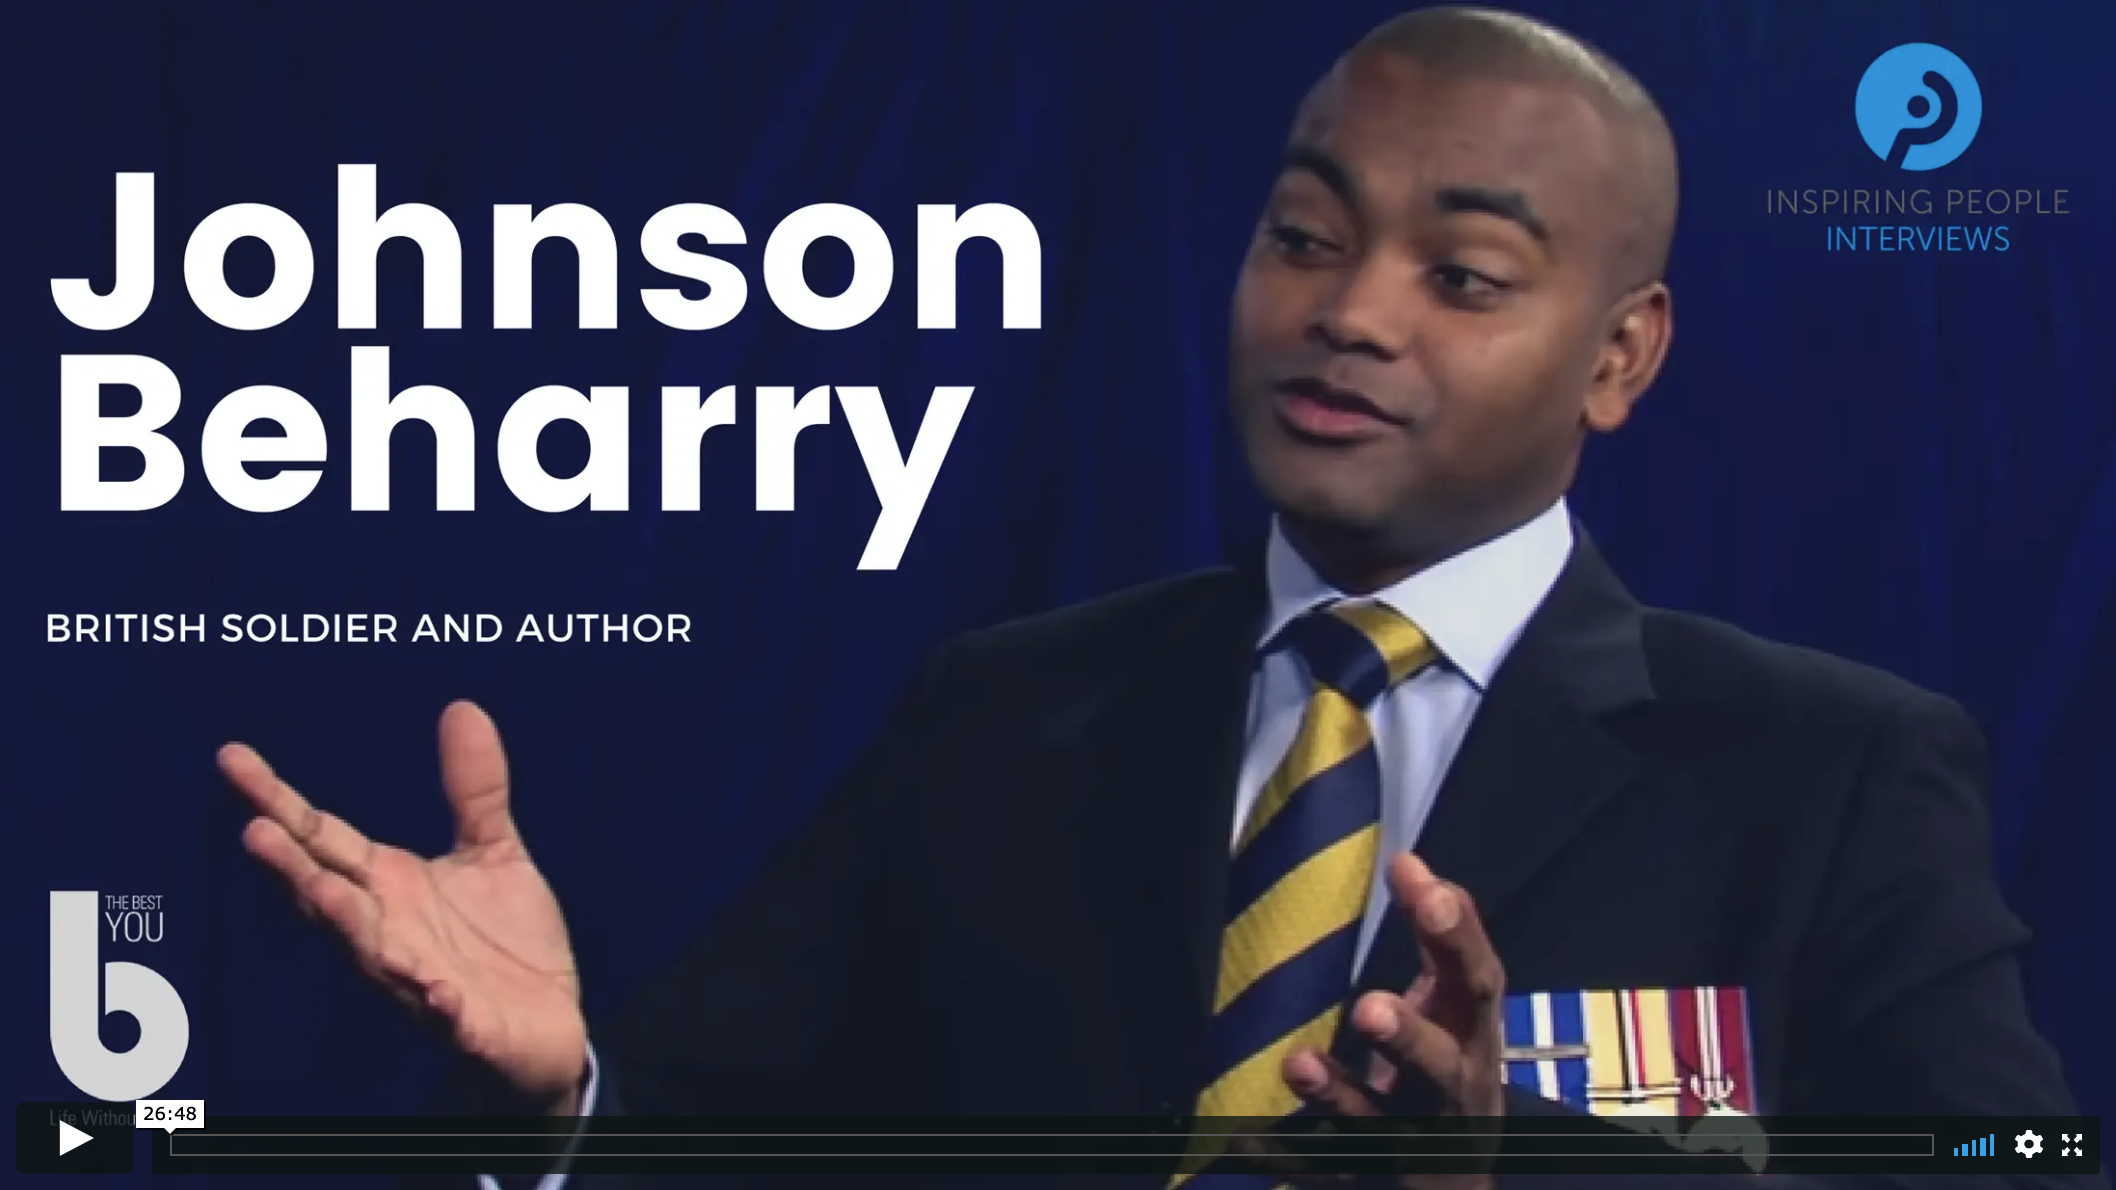 Johnson Beharry VC